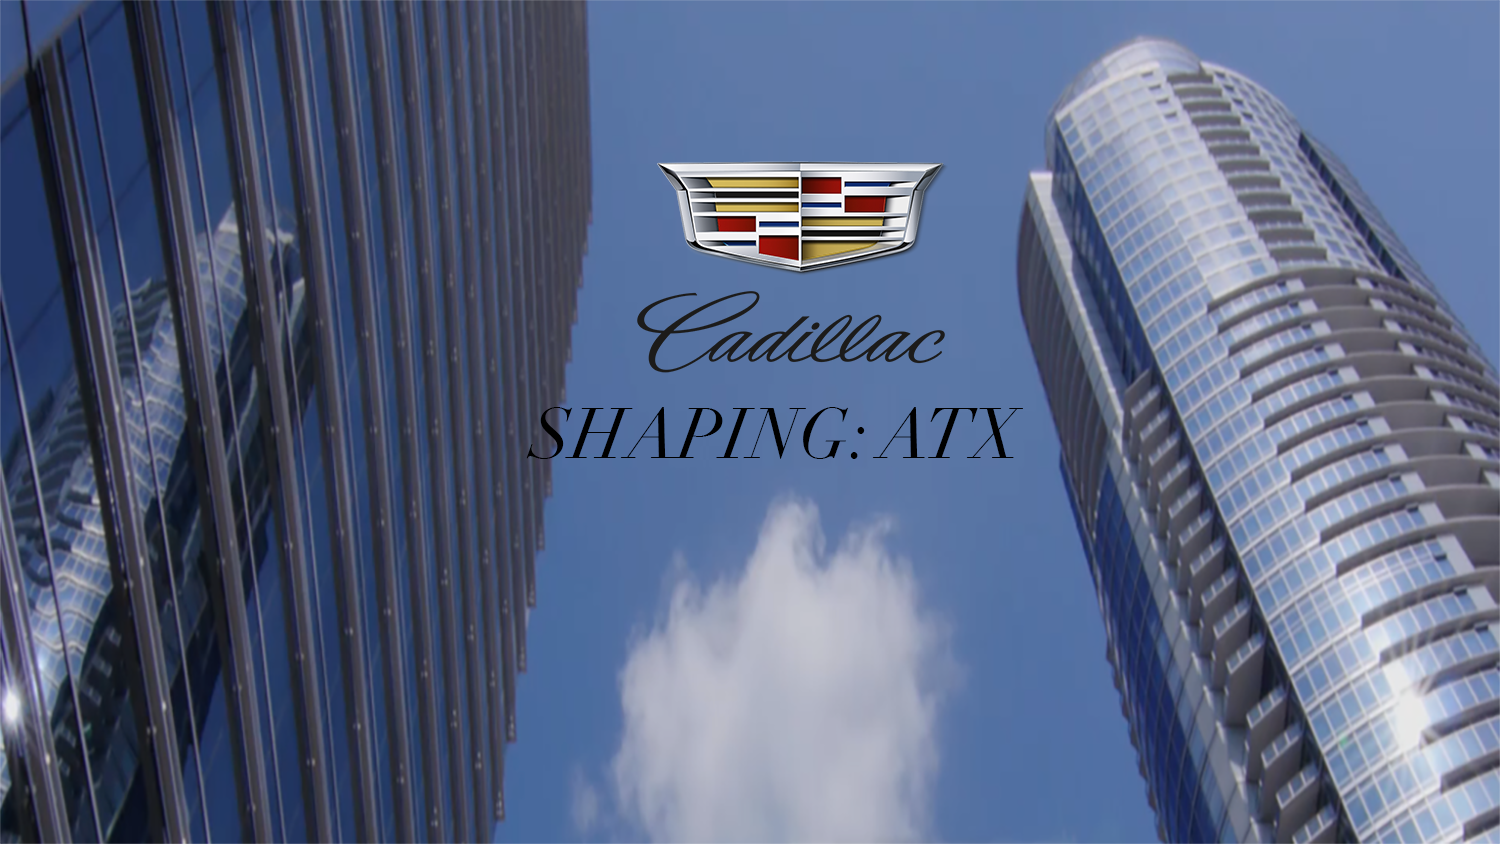 shaping atx brought to you by cadillac. Black Bedroom Furniture Sets. Home Design Ideas